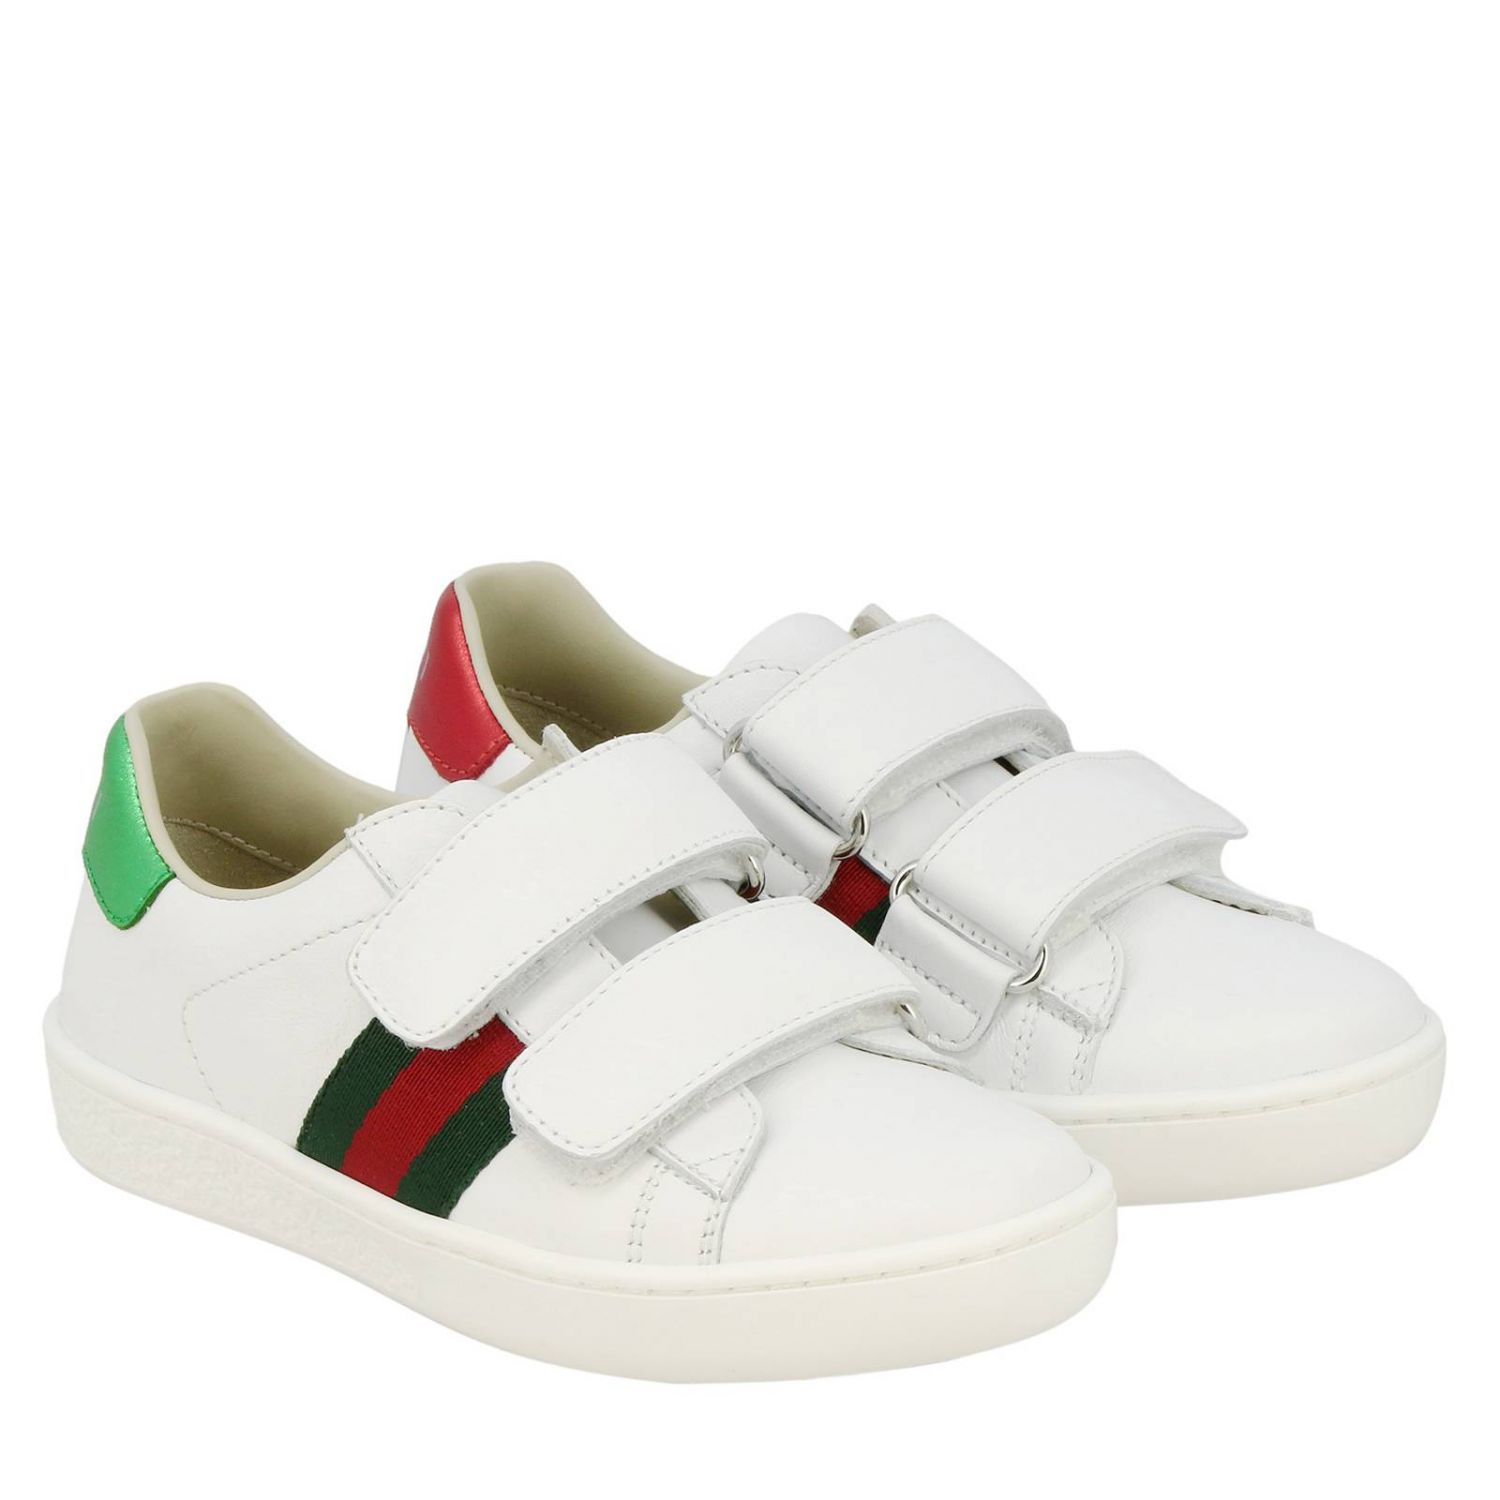 Zapatillas de cuero Ace Gucci con correas web y hebillas dobles blanco 2